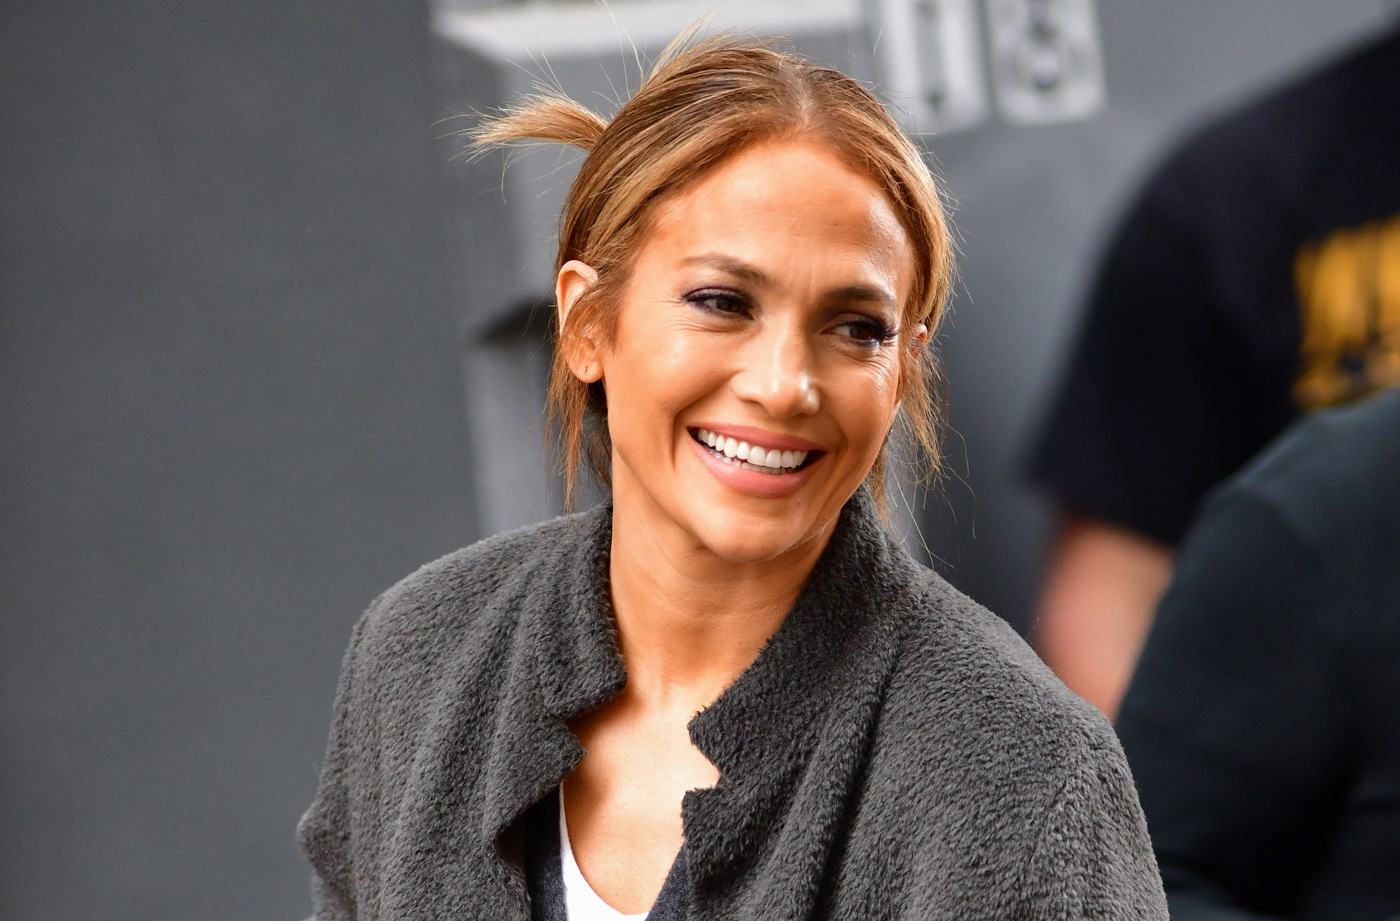 Thumbnail for Train Like Jennifer Lopez With This 5-Move Workout You Can Do at Home